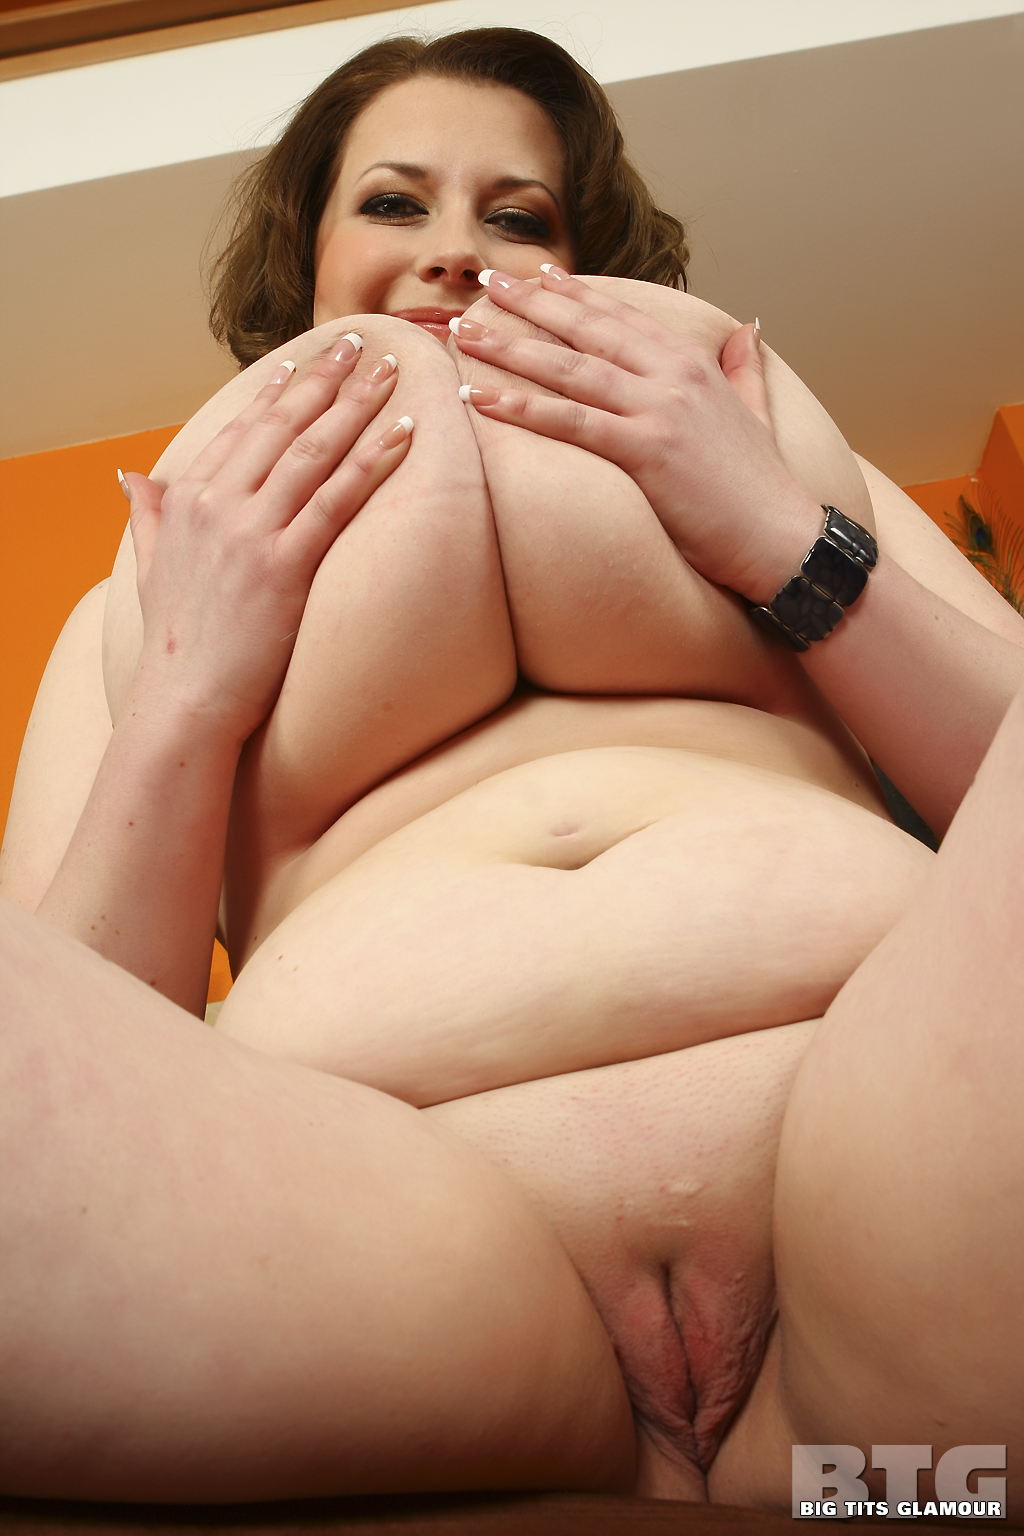 Large naked breasts-6948